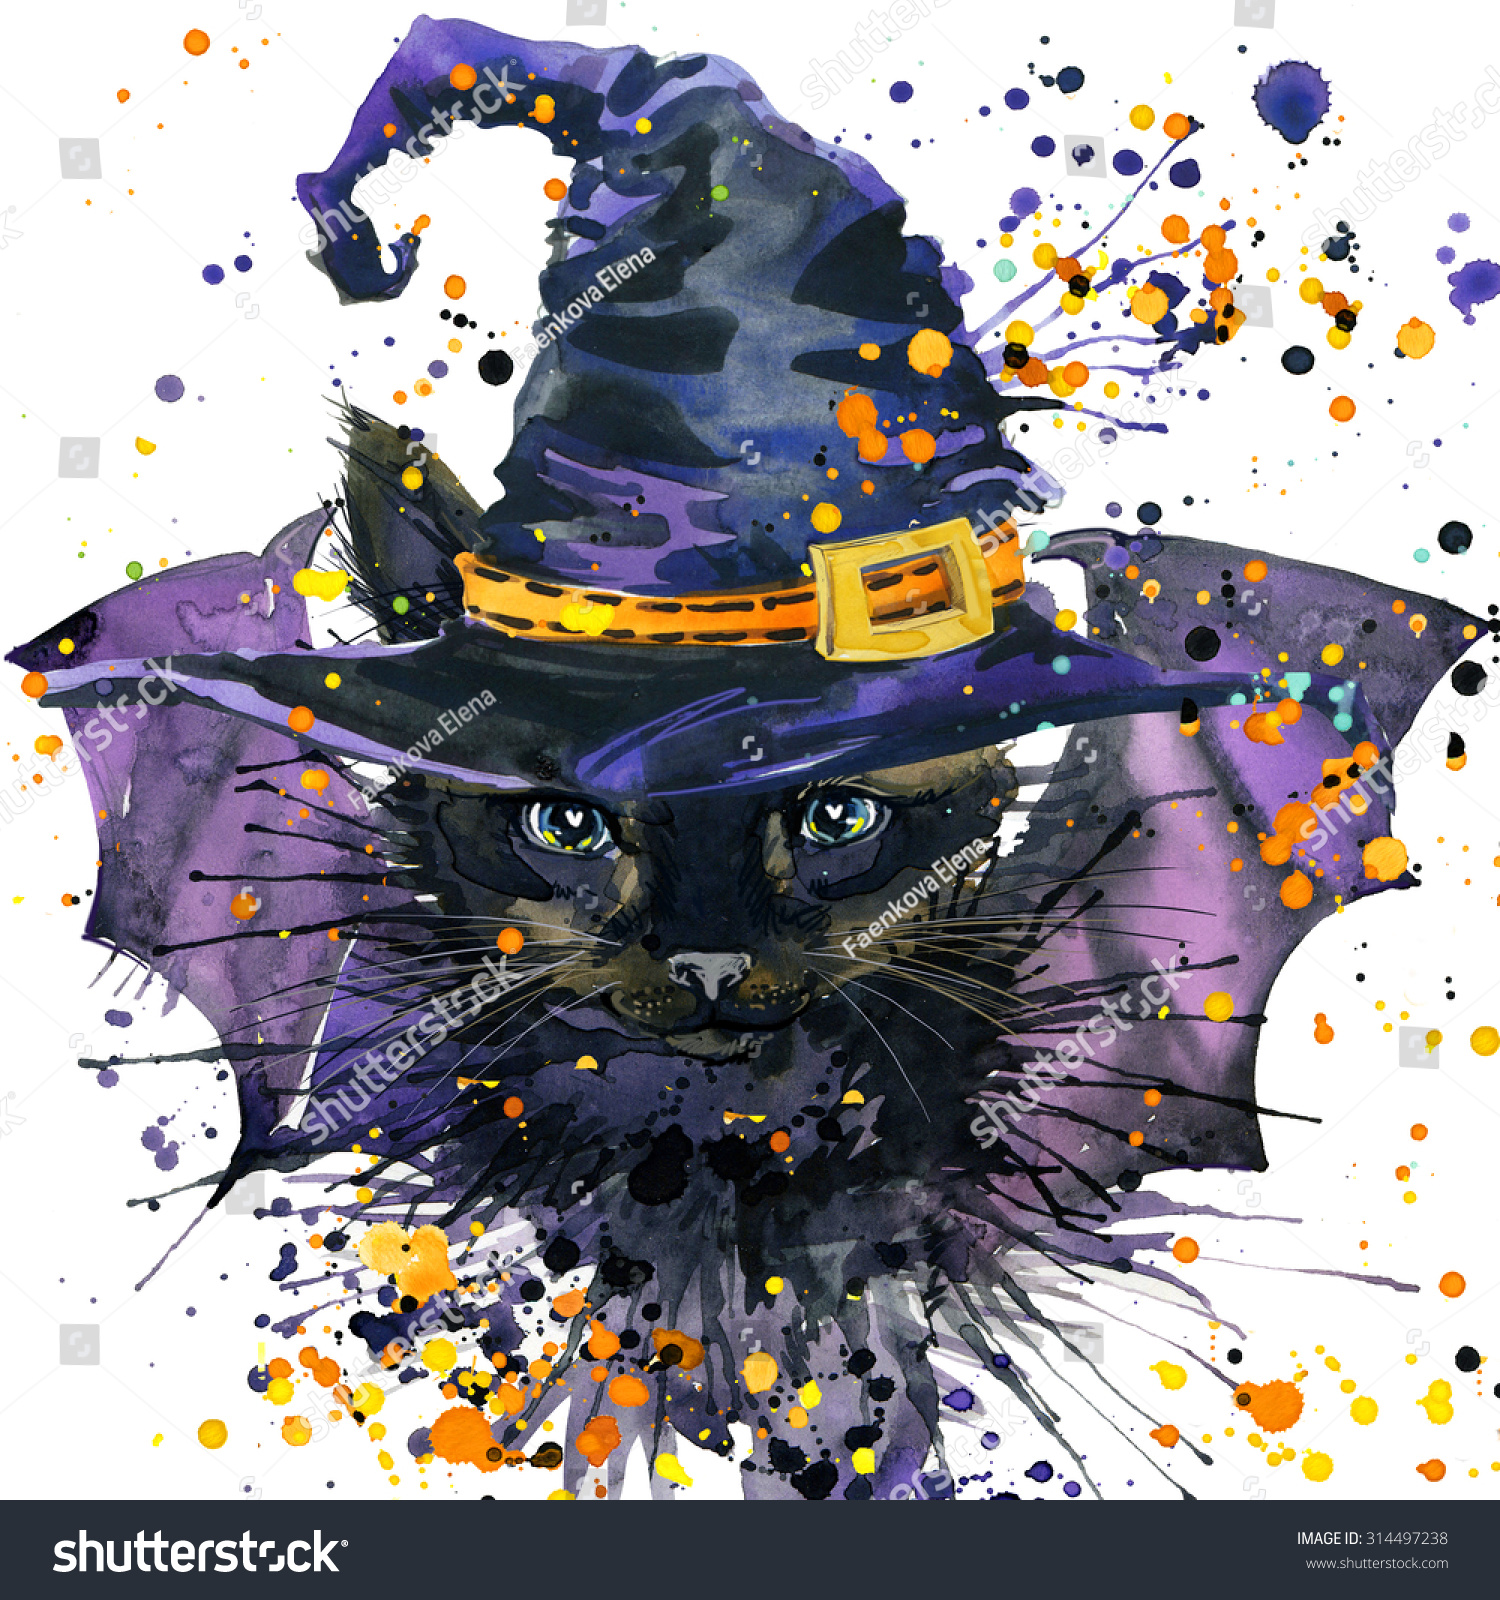 Halloween Cat And A Witch Hat Watercolor Illustration Background For The Holiday